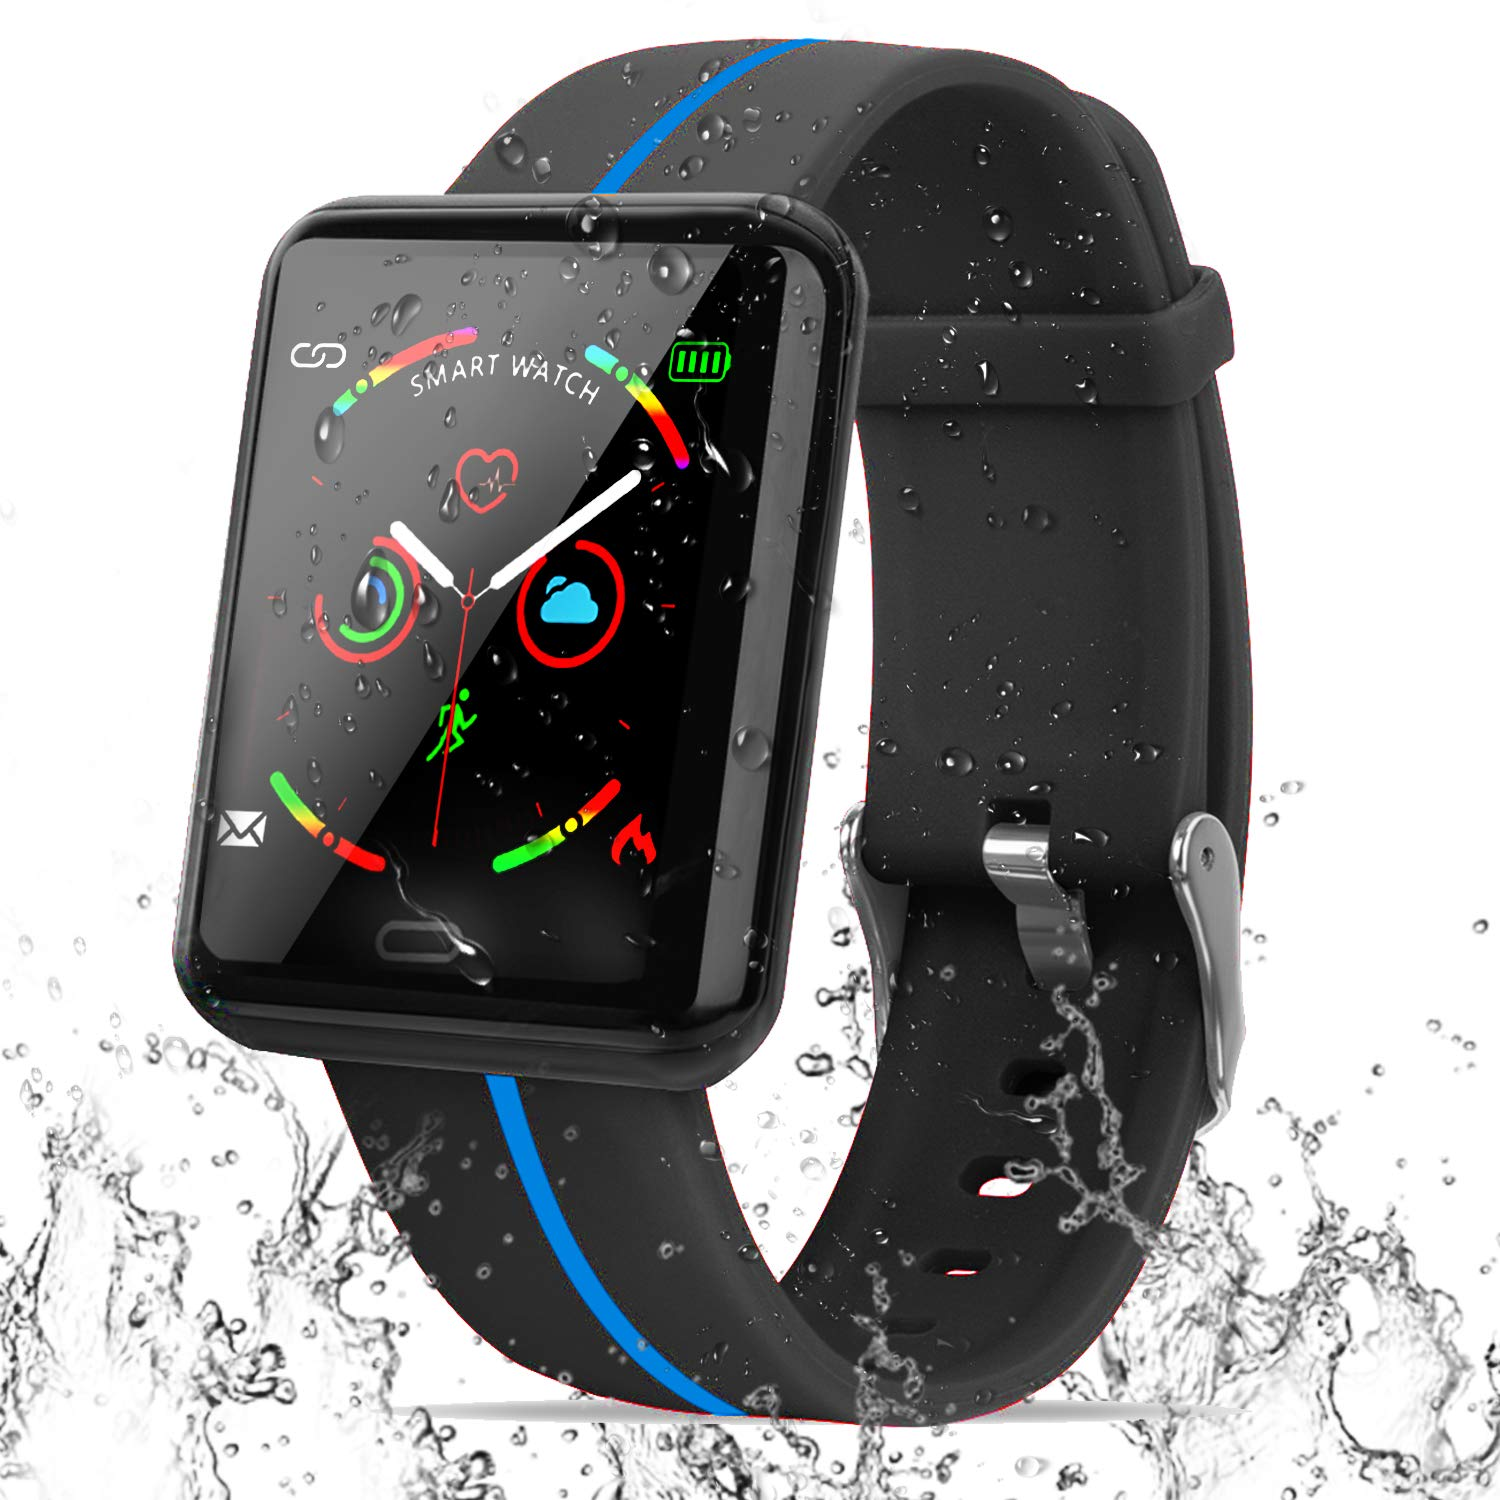 Smart Watch IP67 Waterproof Fitness Tracker,Large Touchscreen Smartwatch for Women Men Android IOS Sport Outdoor Watch with Pedometer Blood Pressure ...